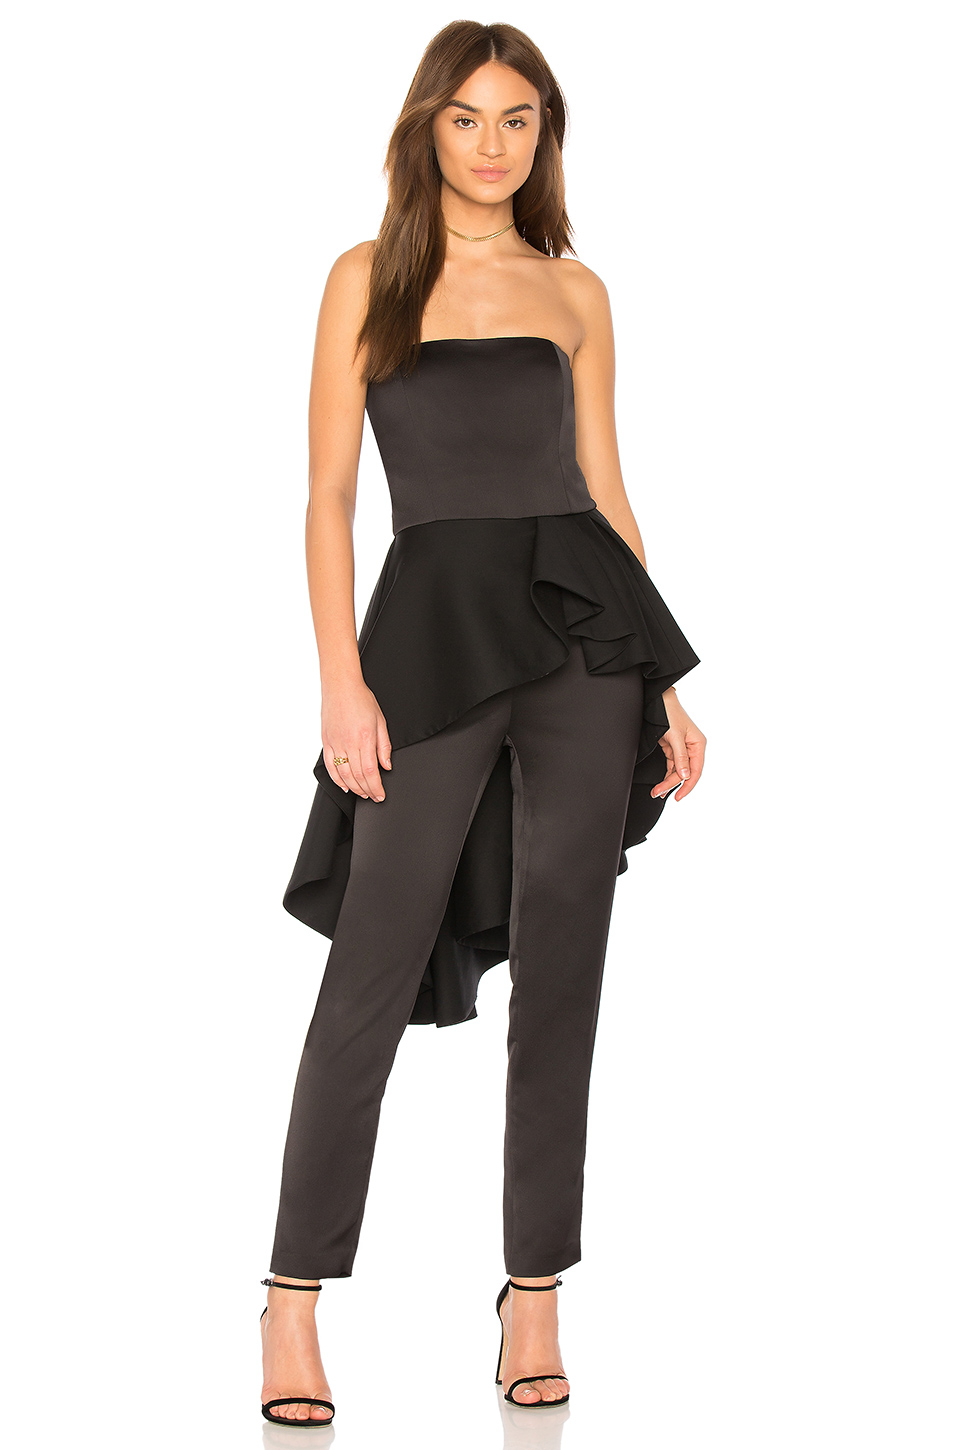 ab5896fa8a93 Buy Original Halston Heritage Strapless Jumpsuit With Flounce Skirt ...